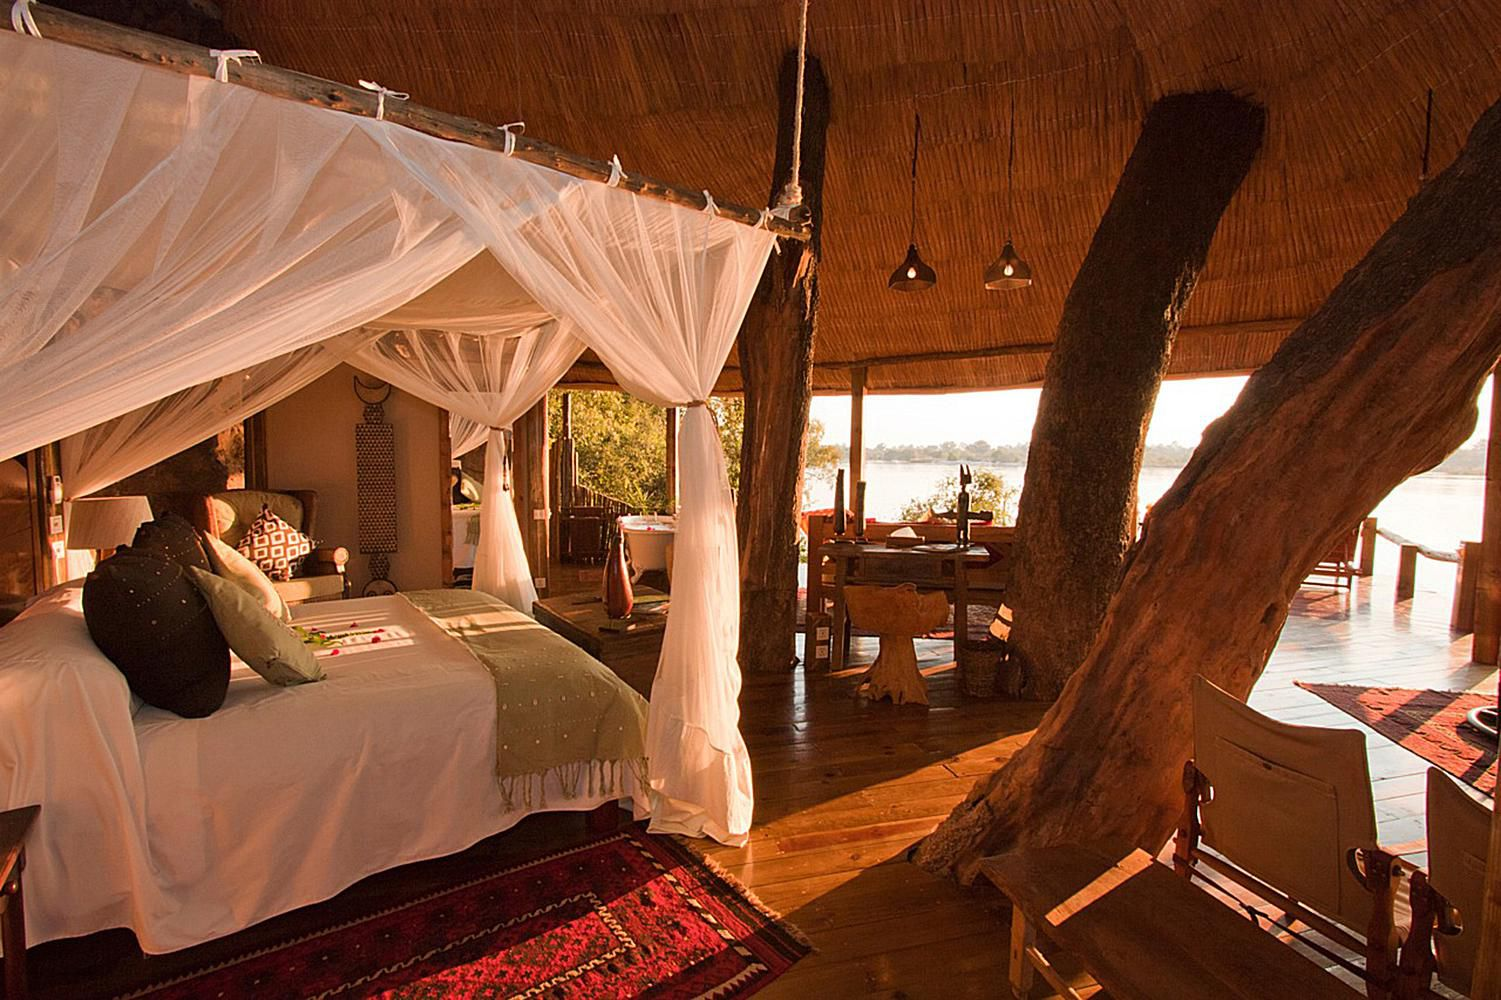 Treehouse Bed and Breakfasts - Unique Getaways